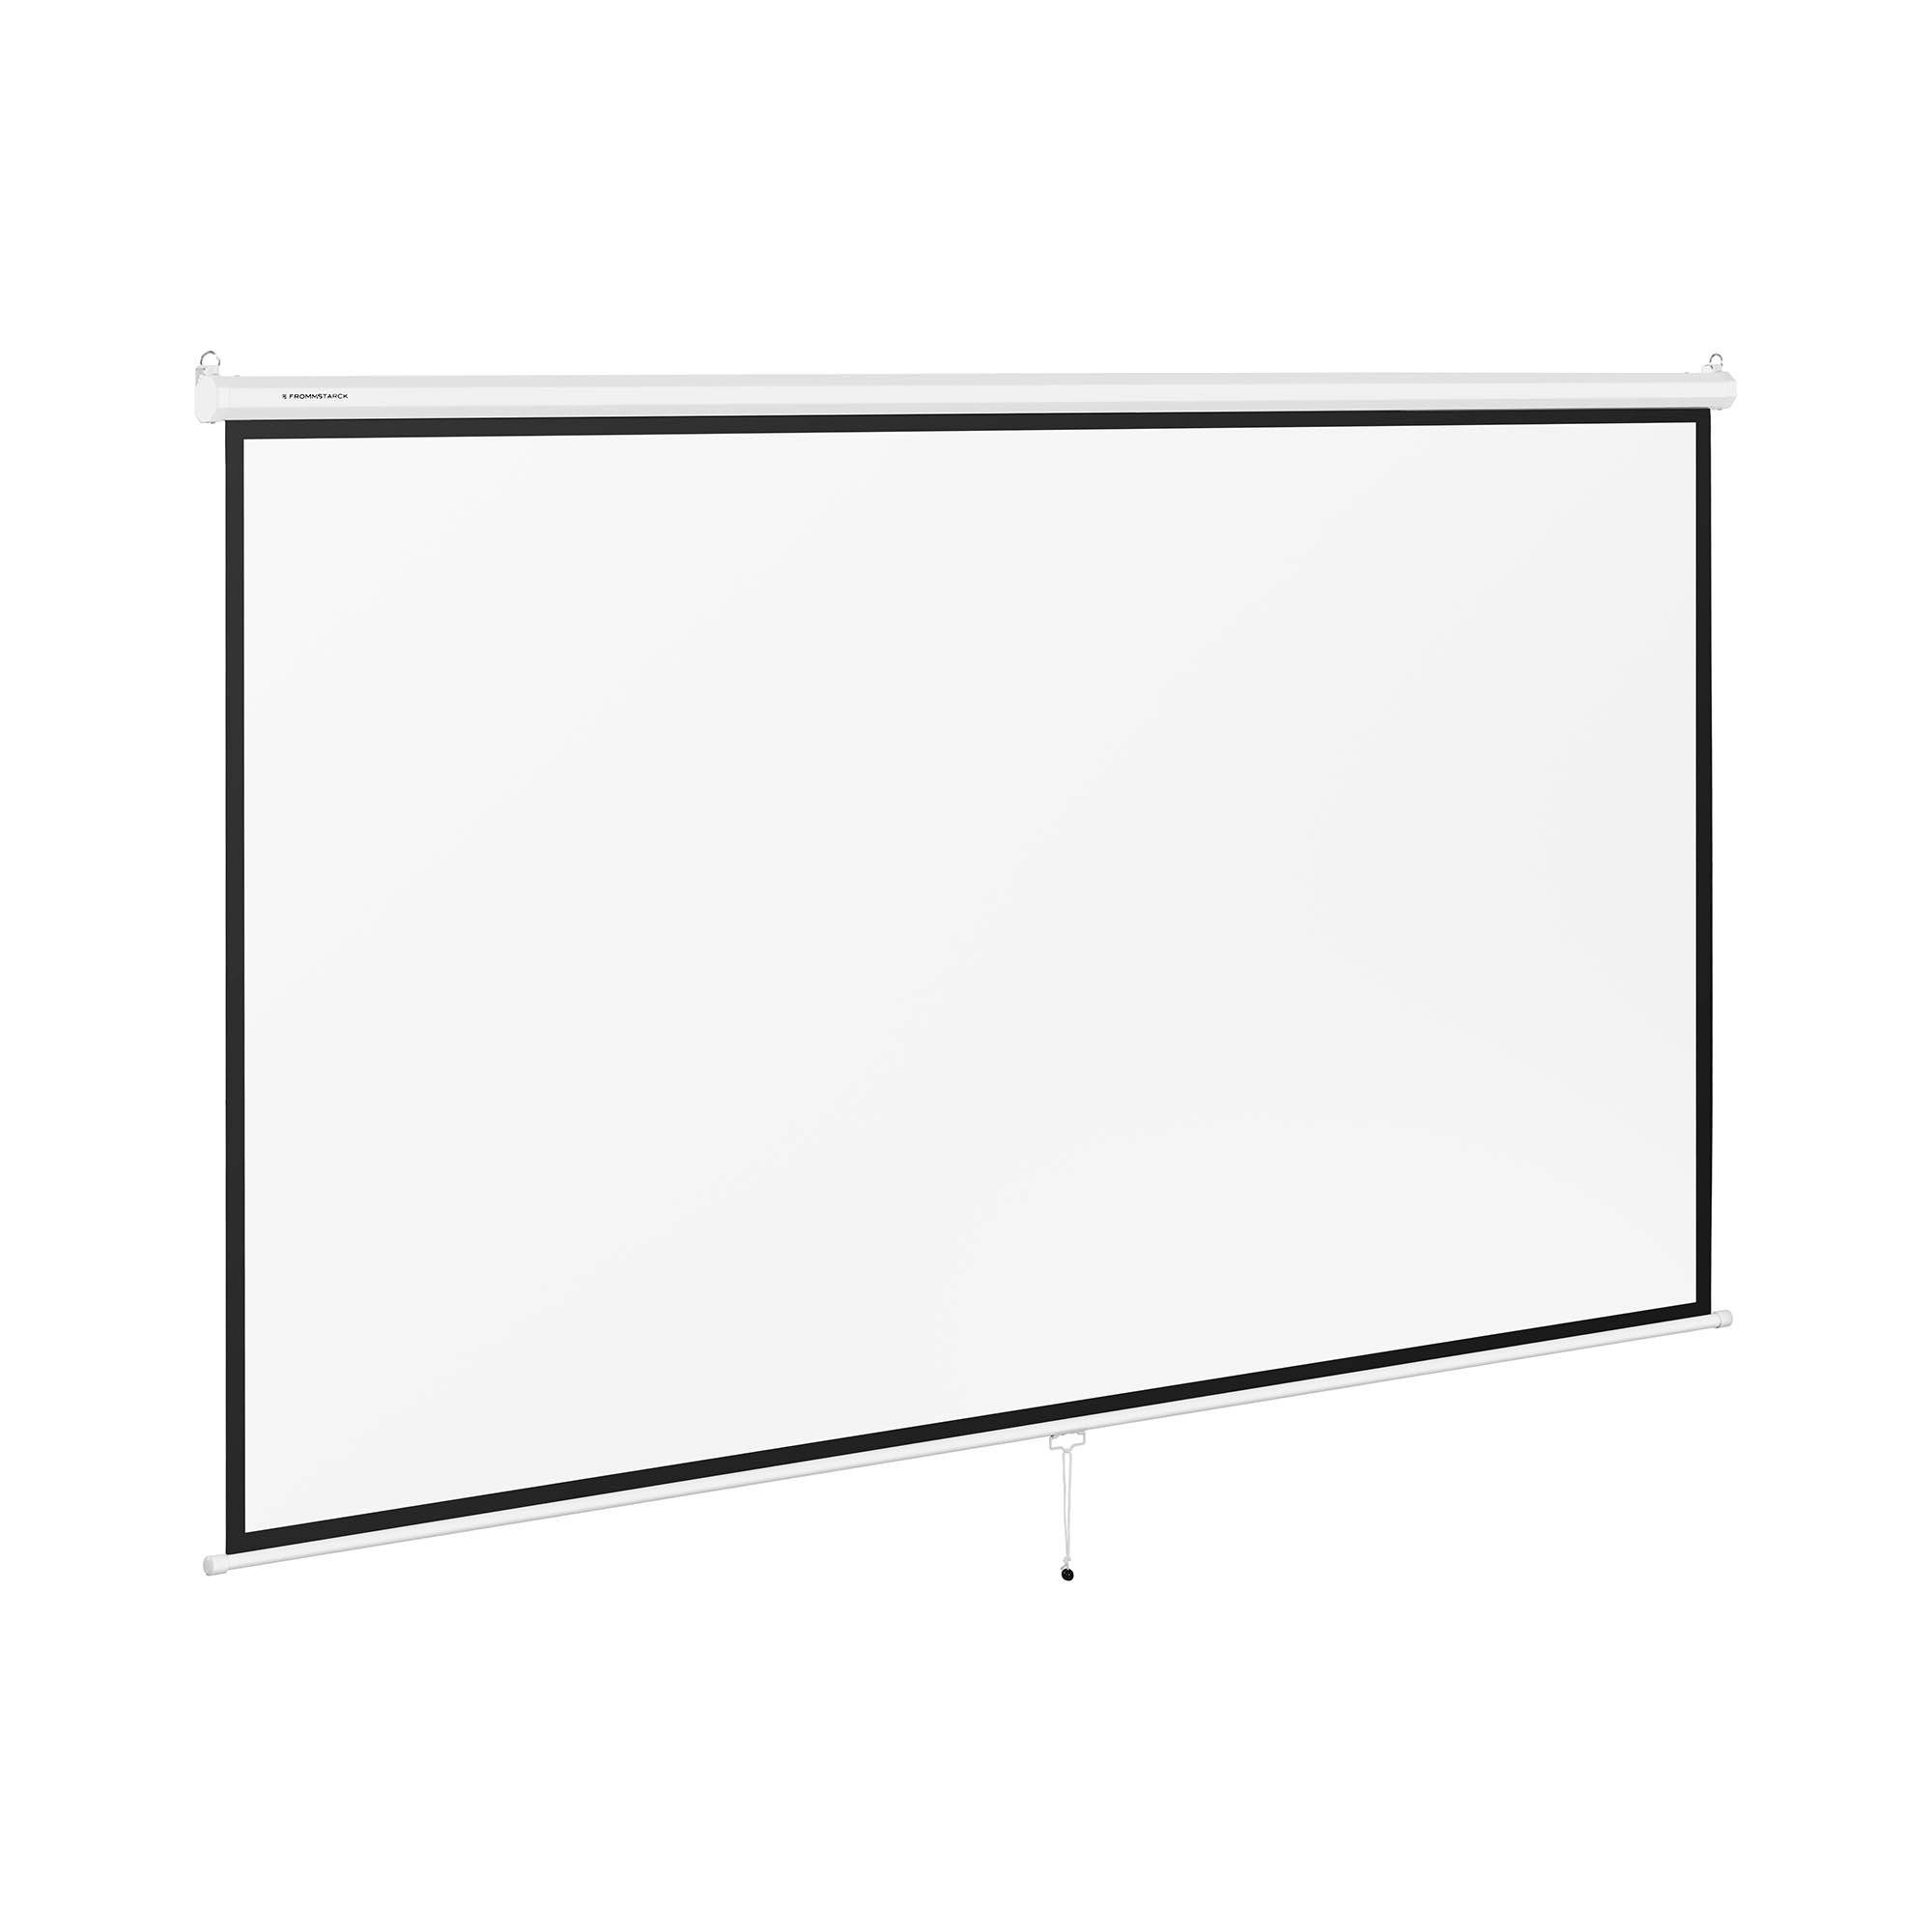 Fromm & Starck Projection Screen - 340 x 210 cm - 16:9